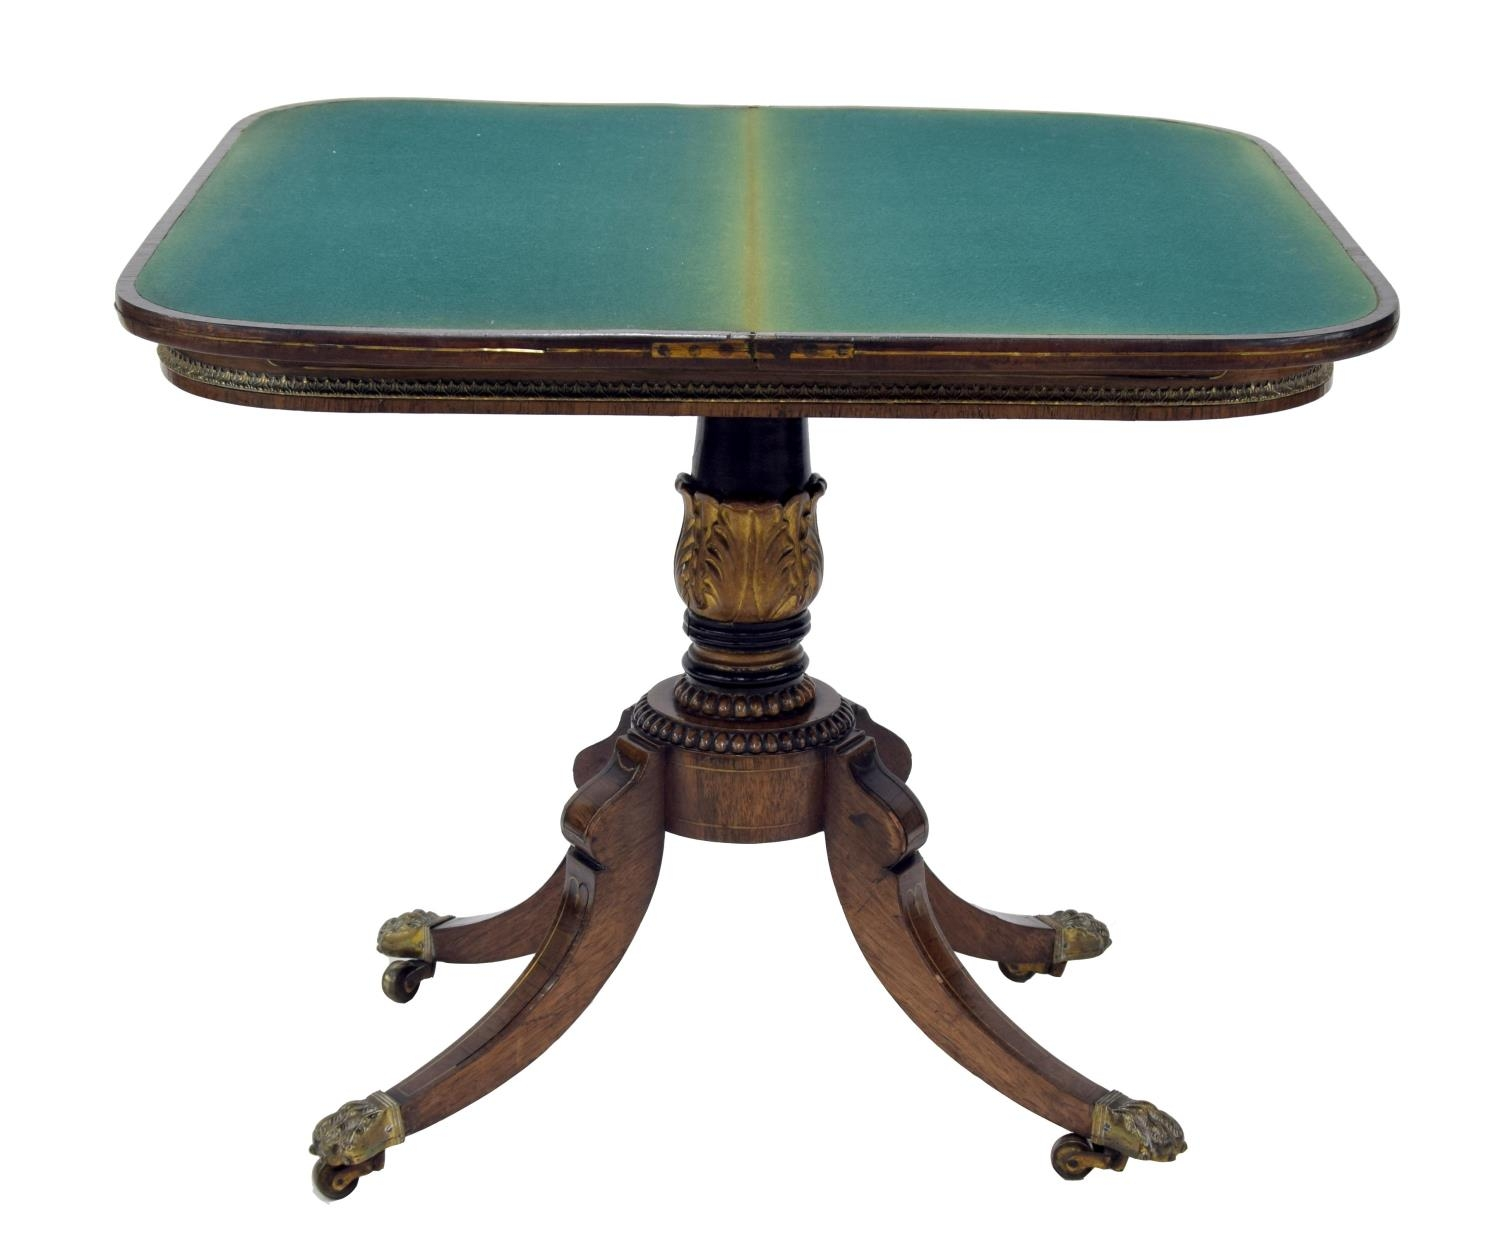 Regency rosewood fold-over games table, the crossbanded top applied with cast gilt metal mounts to - Image 2 of 2